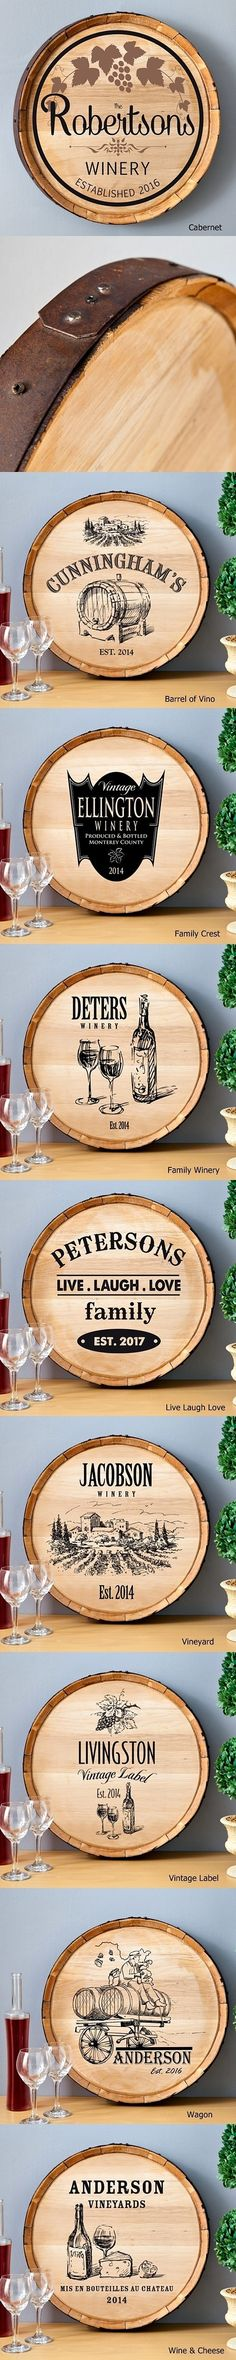 View and Purchase Personalized Wooden Wine Barrel Signs (9 Designs) from Party Favor Source